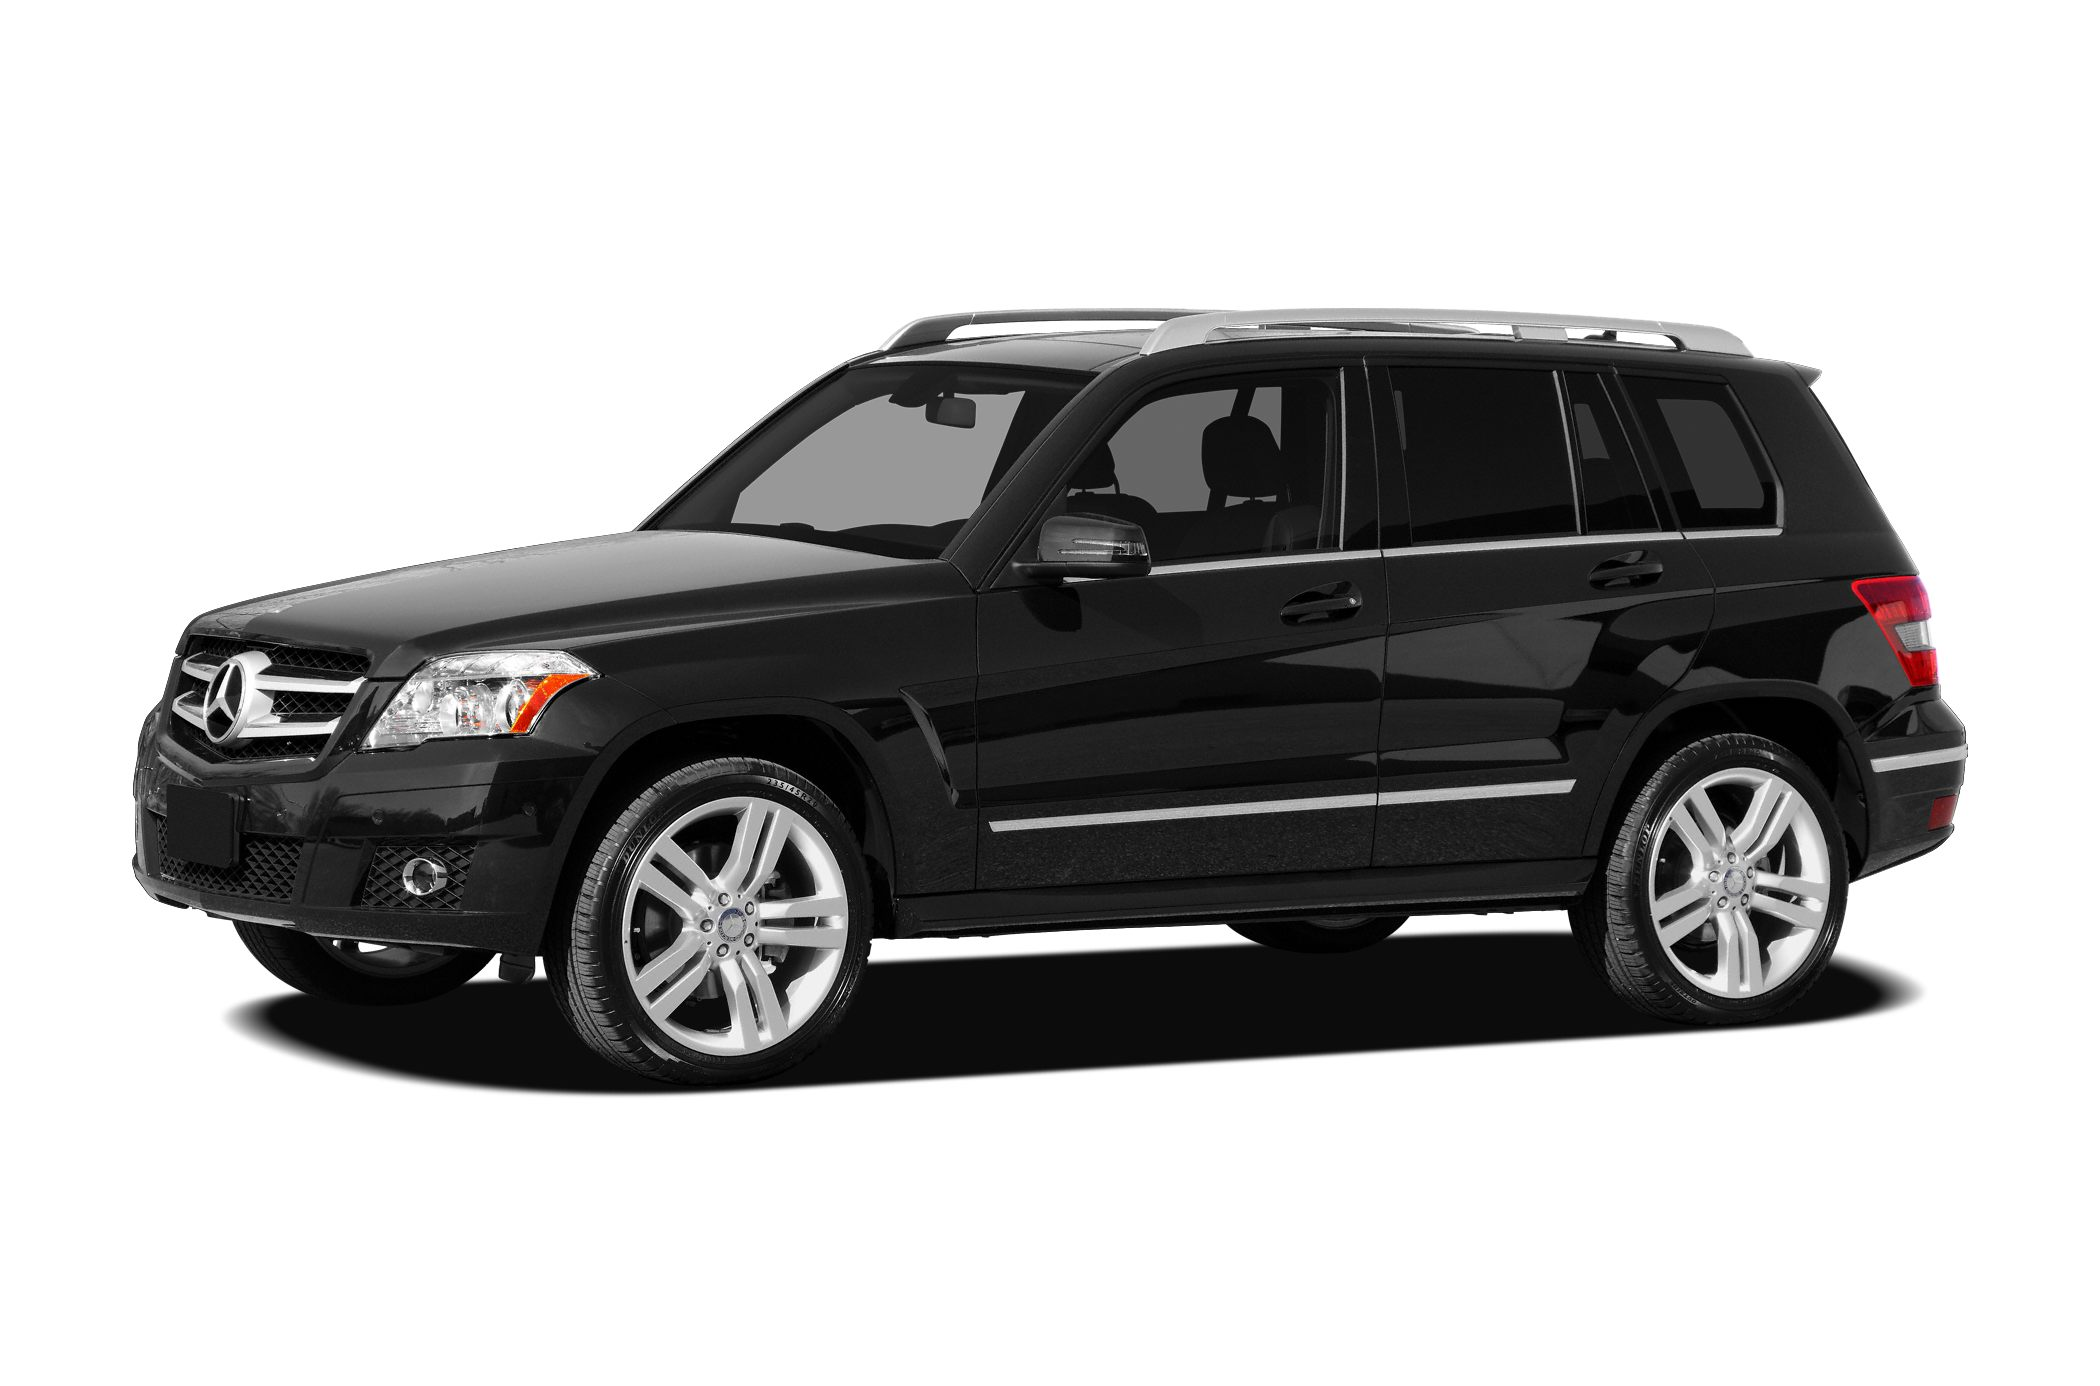 2010 MERCEDES GLK-Class GLK350 4MATIC Navigation and panoramic roof Silver Bullet 4MATIC Miles